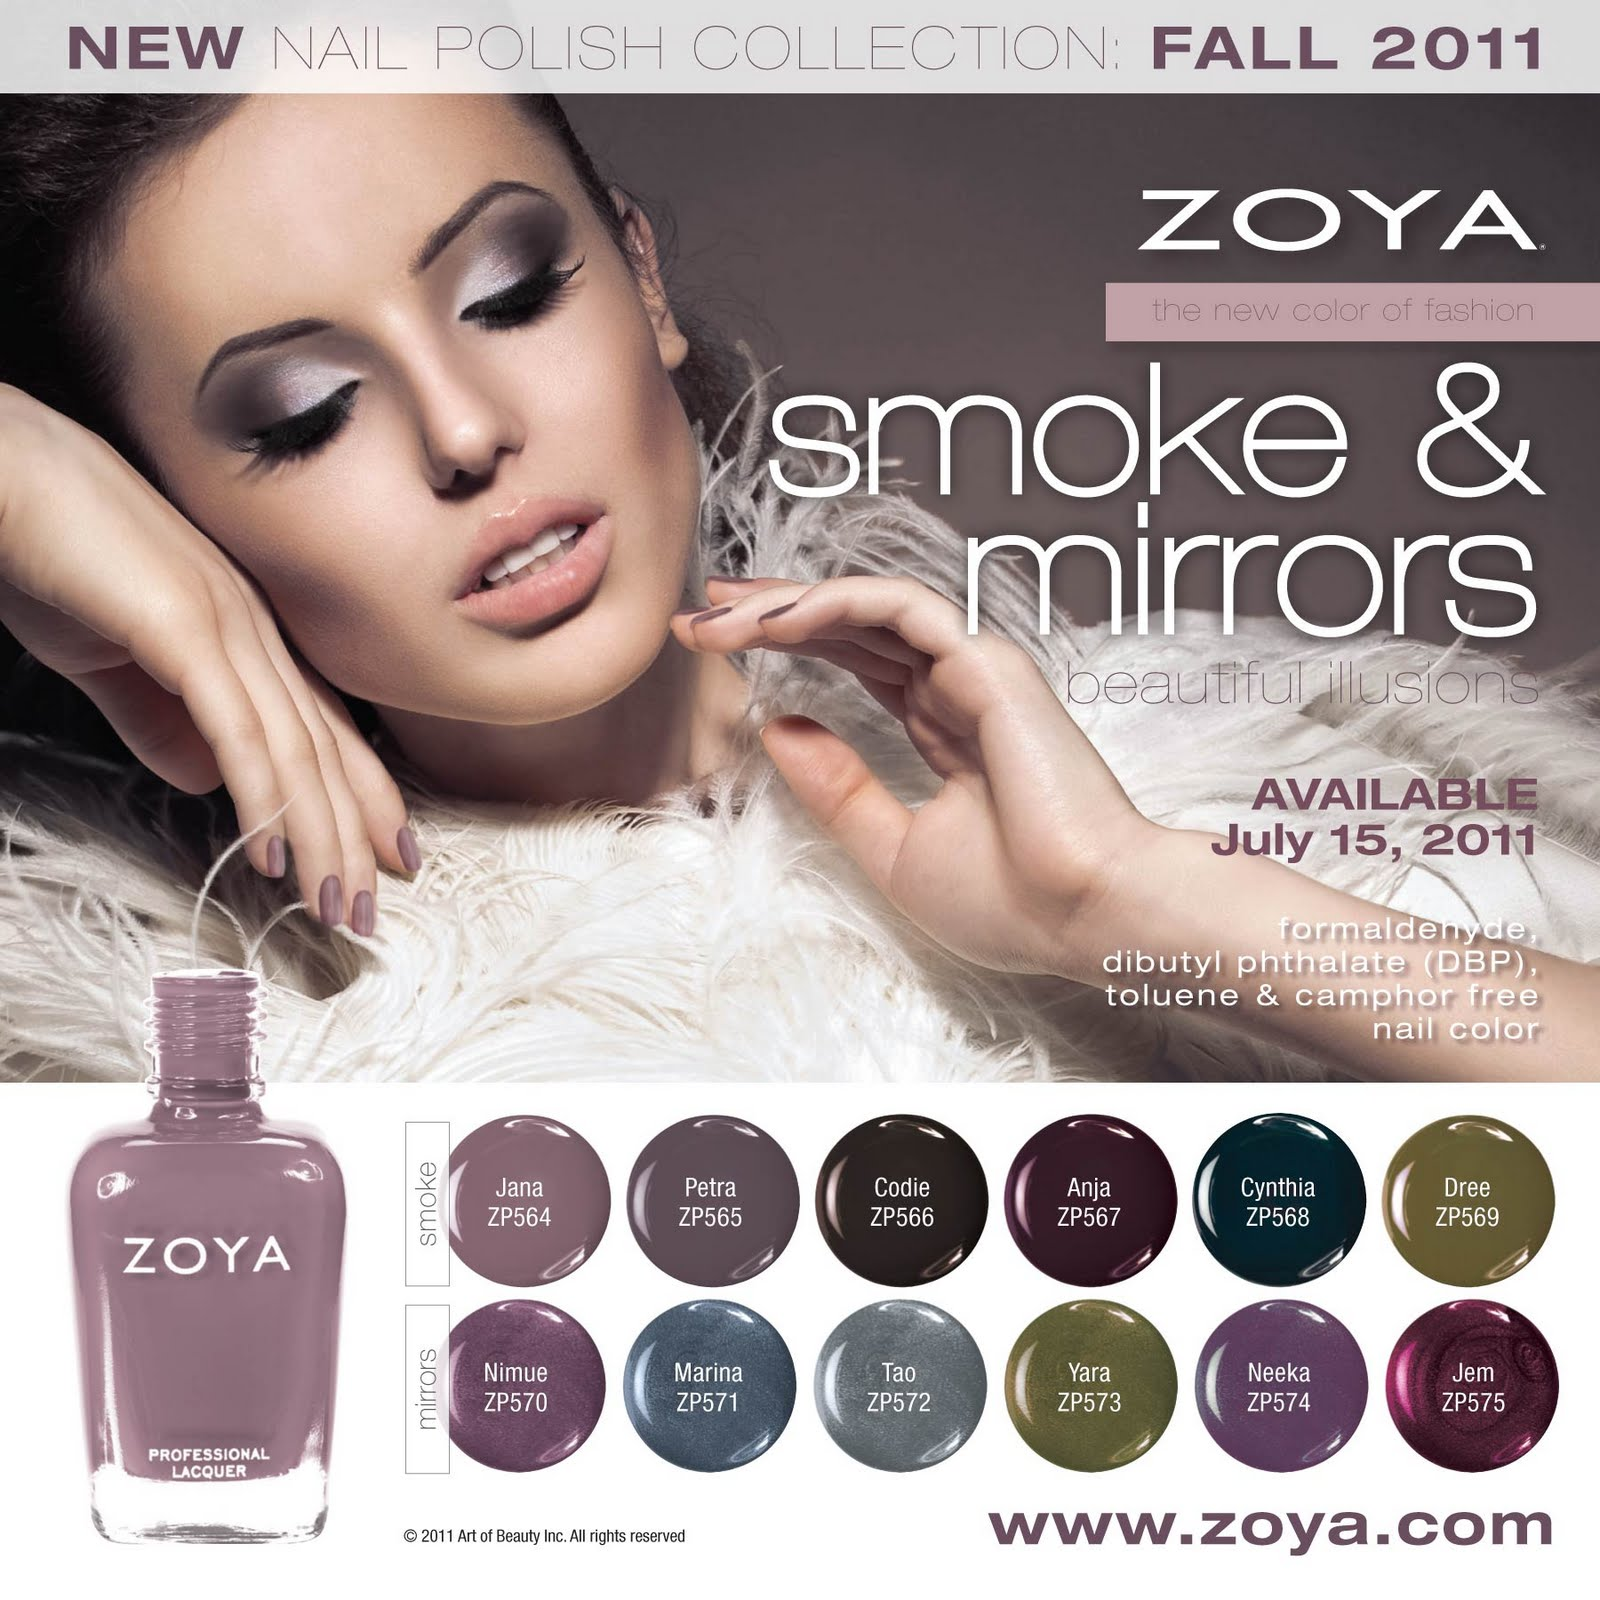 Zoya Nail Polish smoke and mirrors Fall 2011 Media Image web ... the star of MTV's Downtown Girls, before one of her press events.